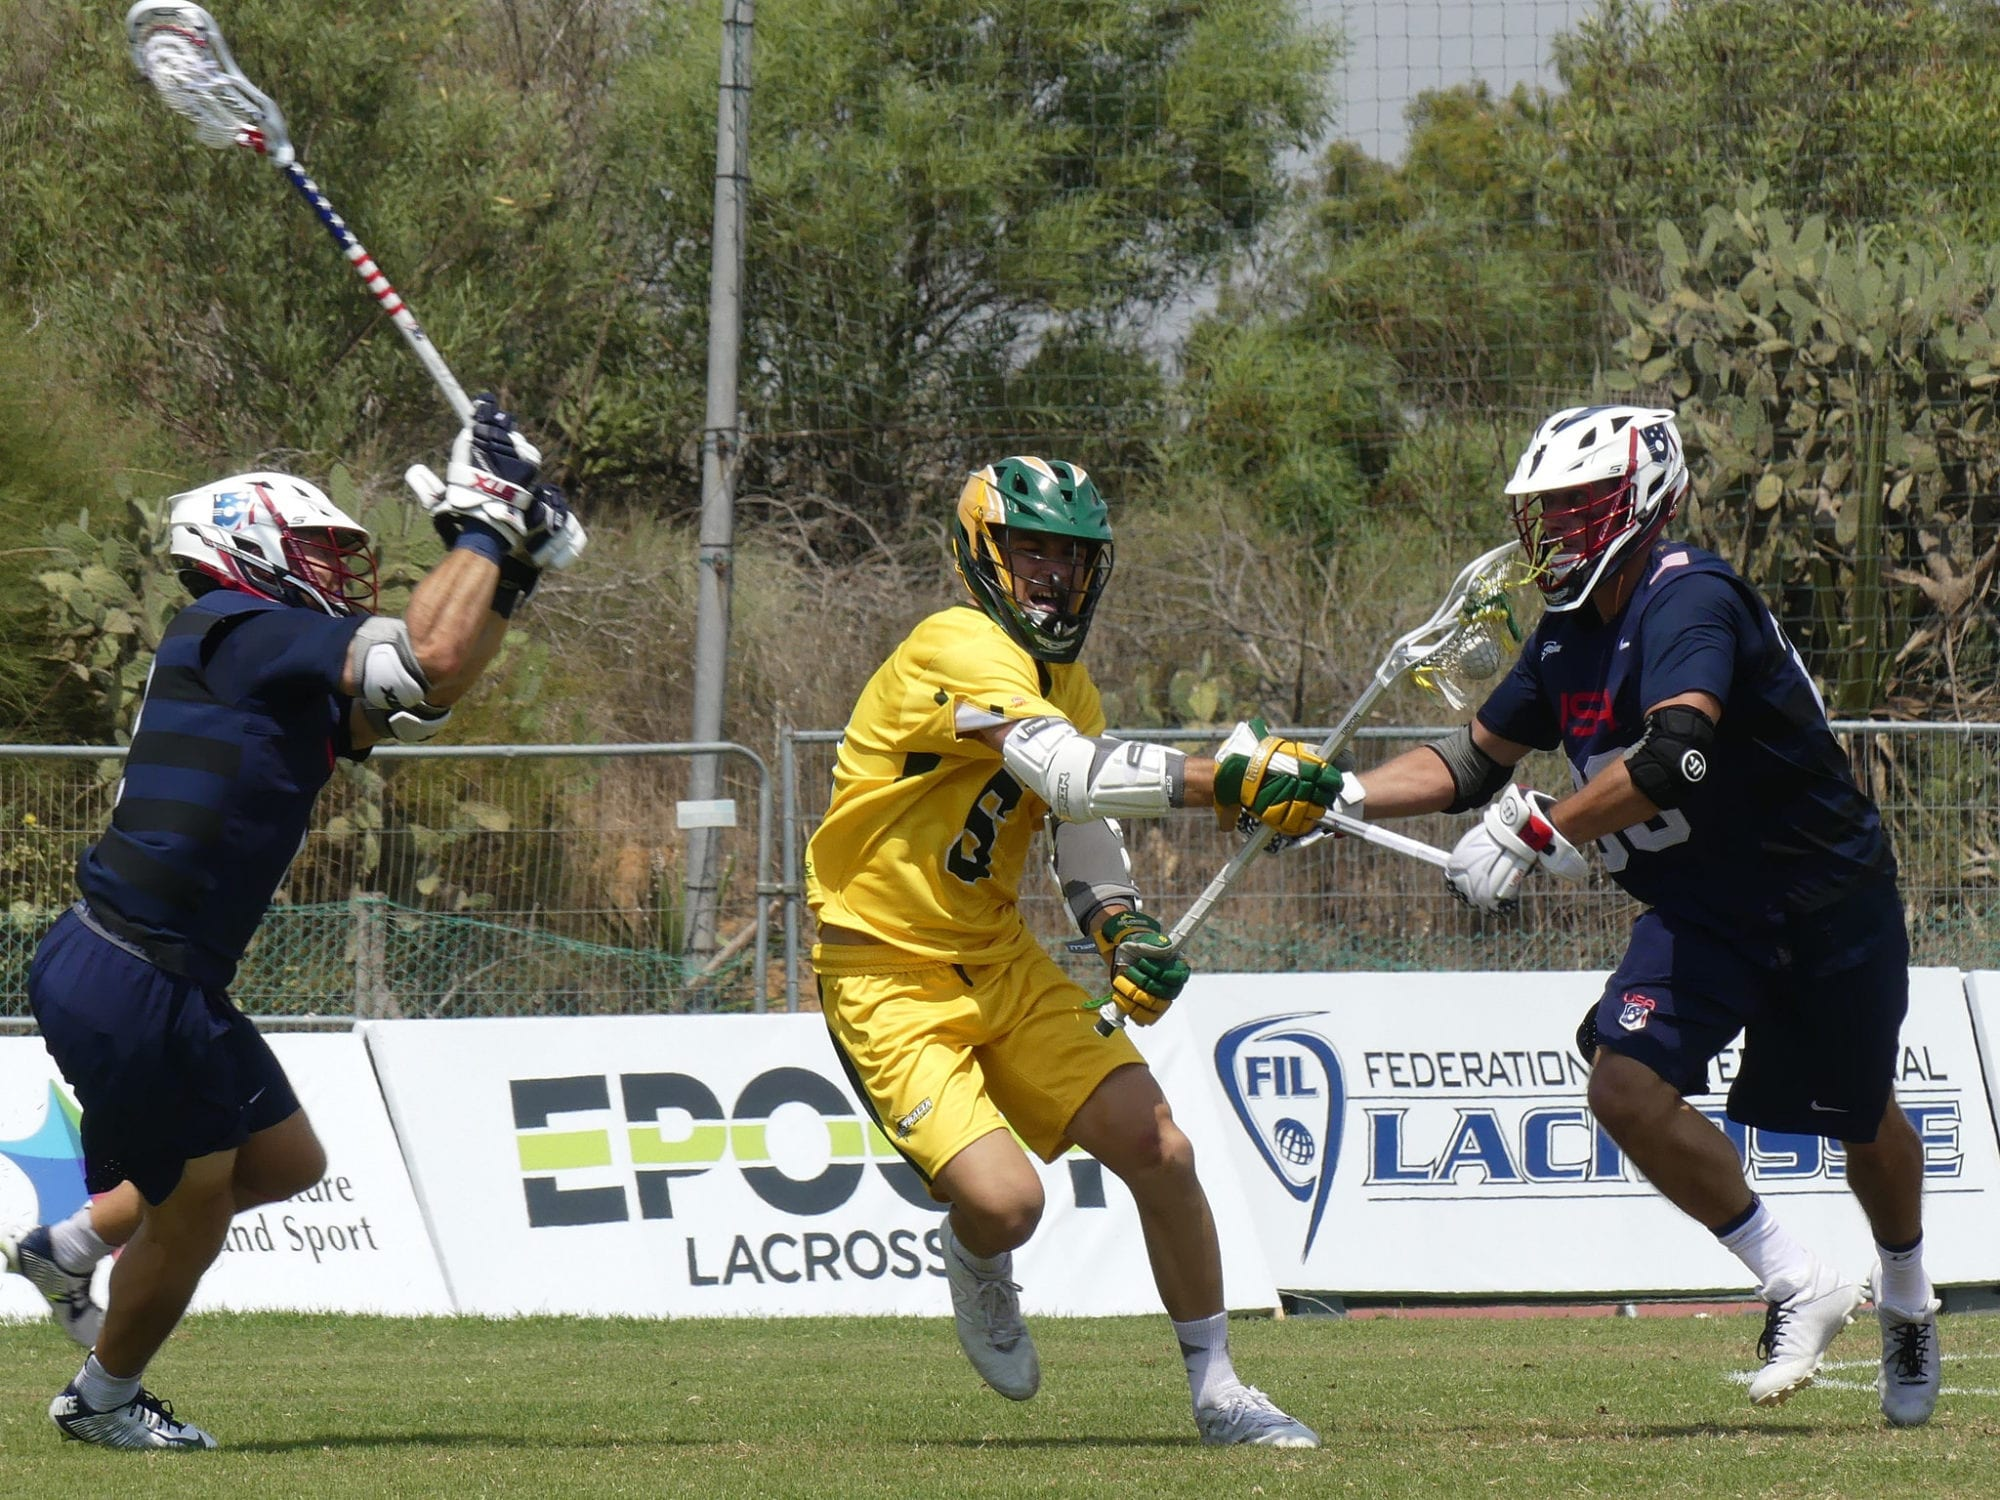 usa lacrosse australia 2018 Day 10 FIL top photos blue group